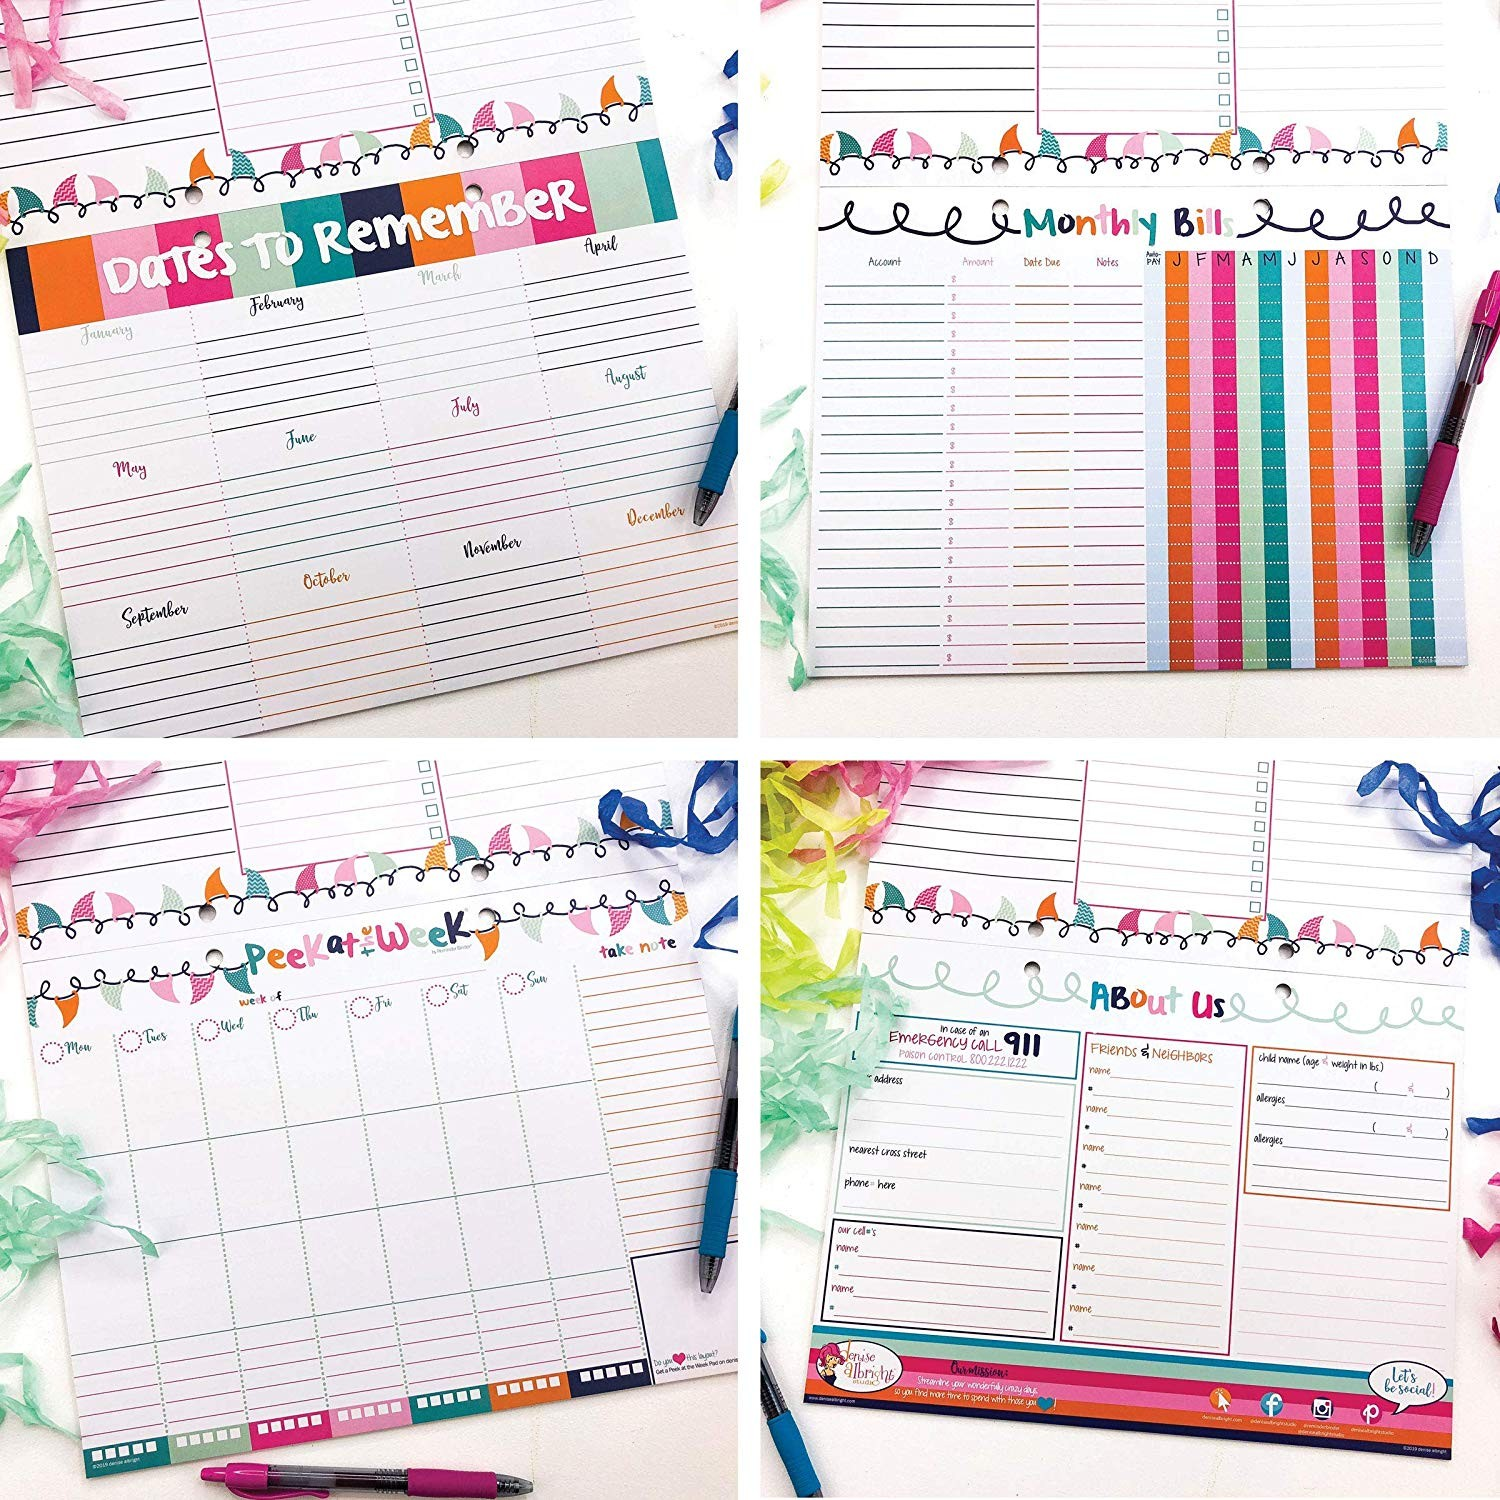 March Reading Month Calendar Activities Recientes Amazon 2019 2020 Monthly Desk Calendar event Stickers Of March Reading Month Calendar Activities Más Populares Old Style and New Style Dates